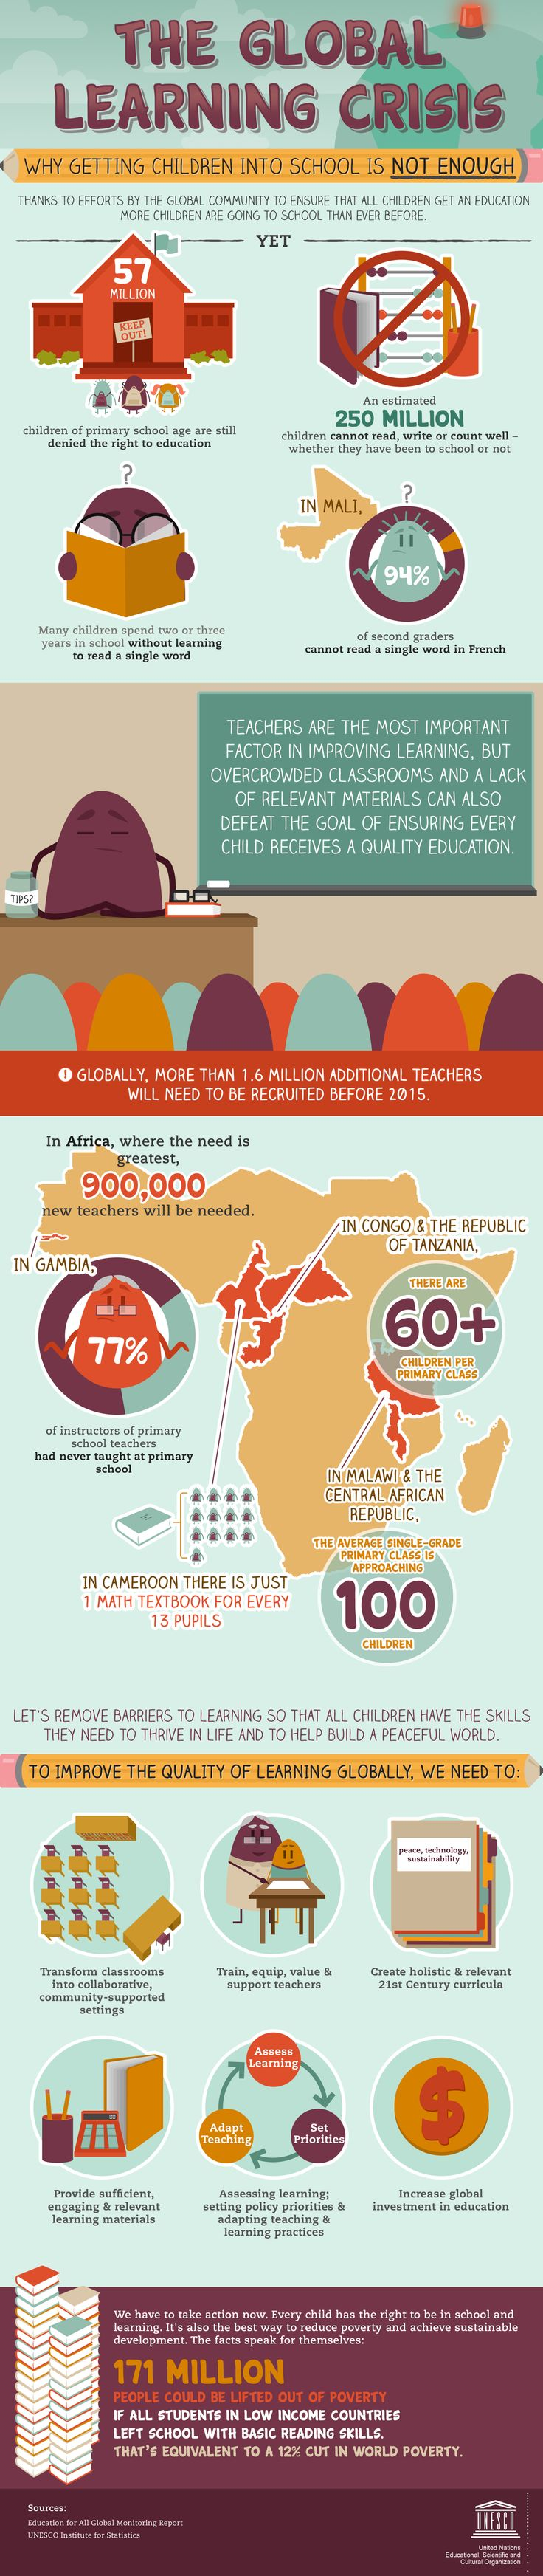 Despite great advances in enrollment since 2000, 57 million children still remain out-of-school. Enrollment ratios aren't enough. #teachers are the most important factor in improving learning | #infographic repinned by @Piktochart